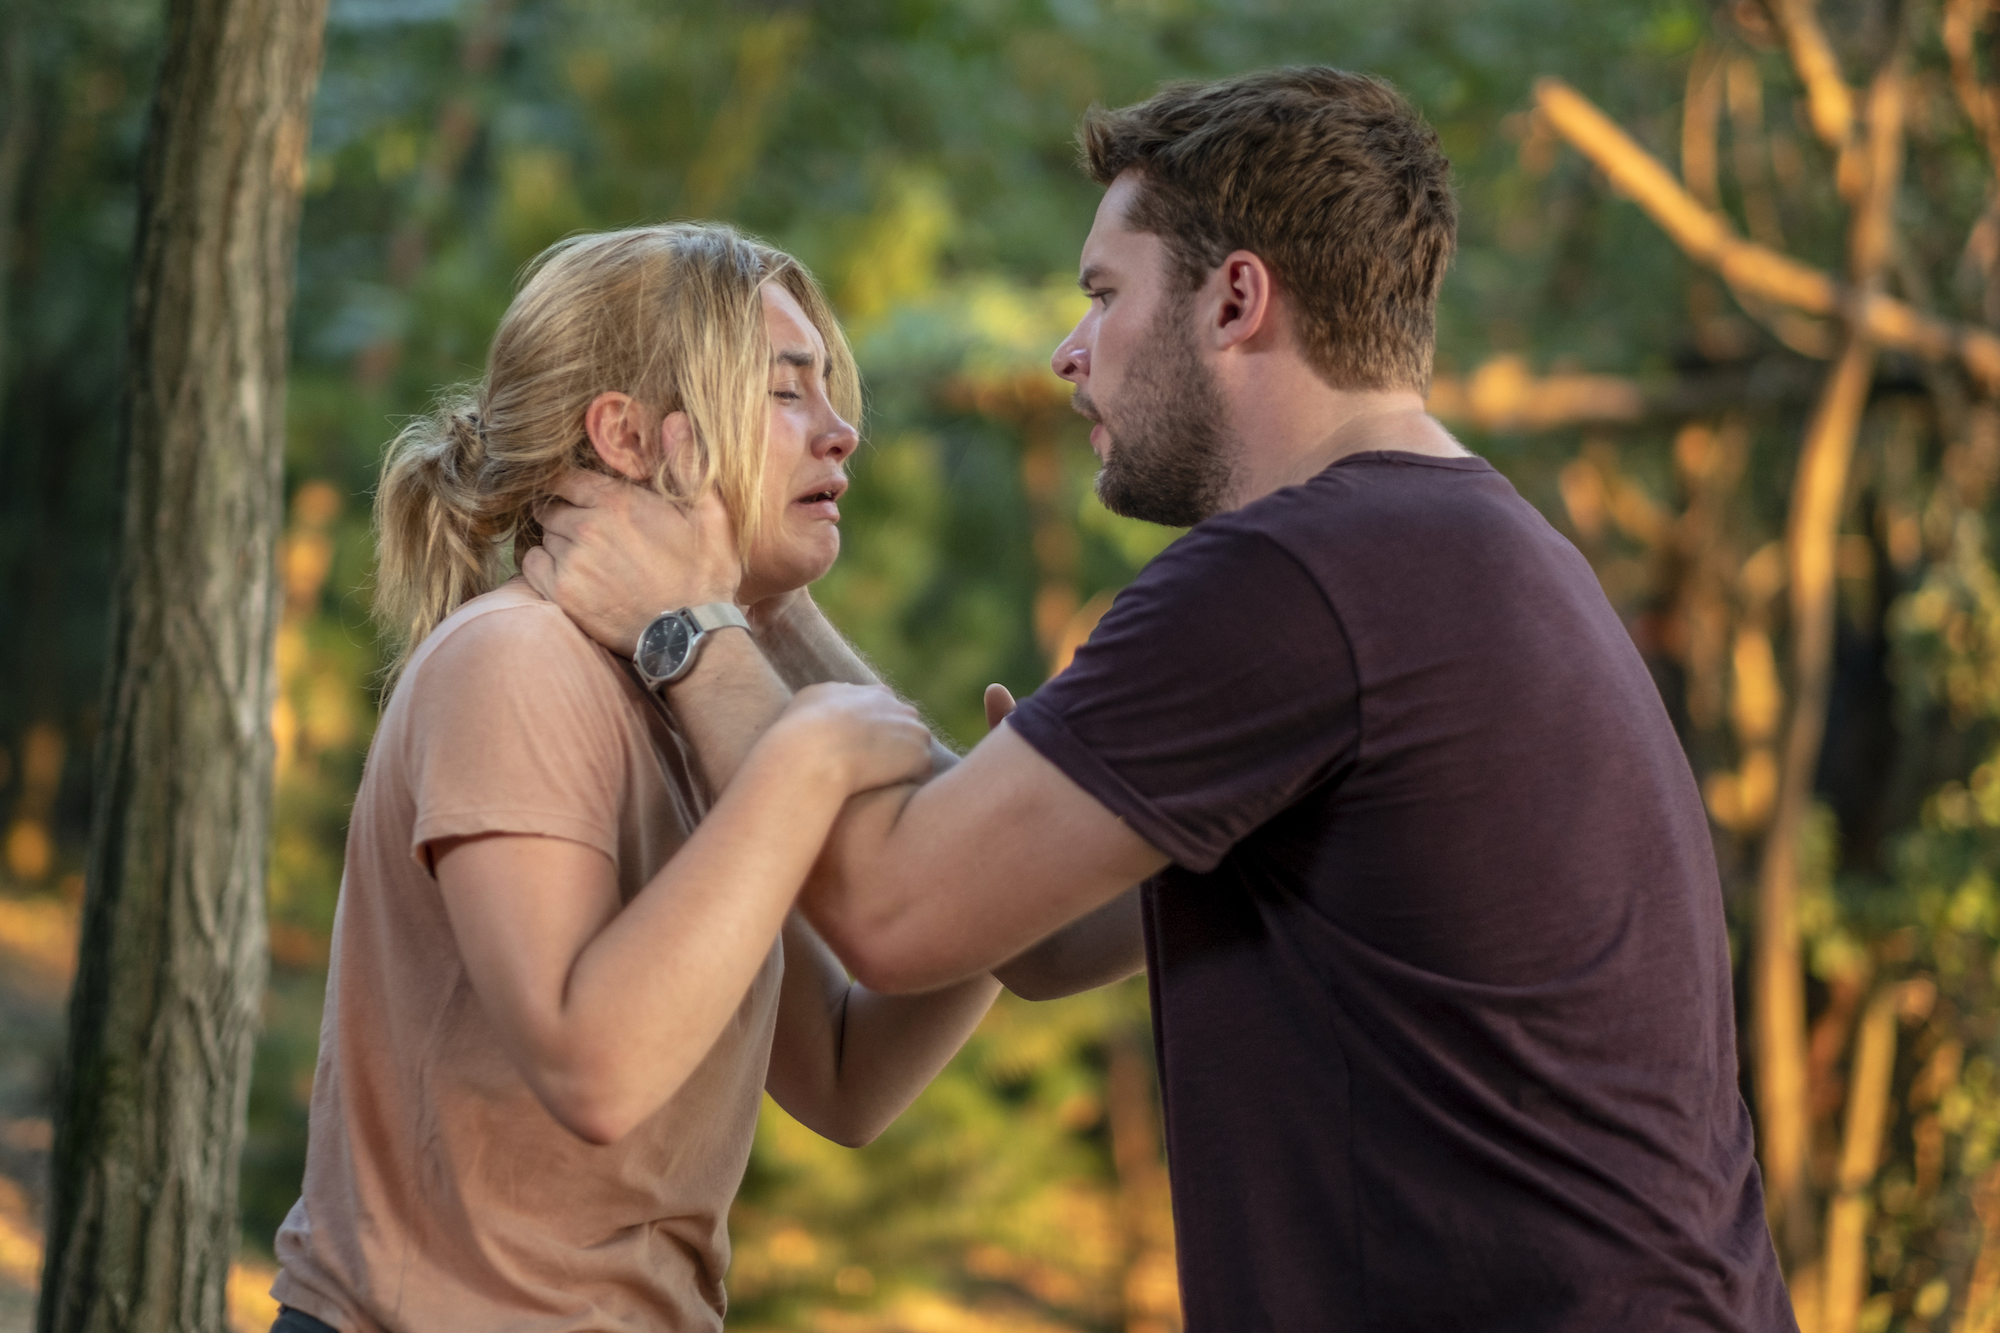 Ari Aster's Midsommar film Florence Pugh and jack Reynor